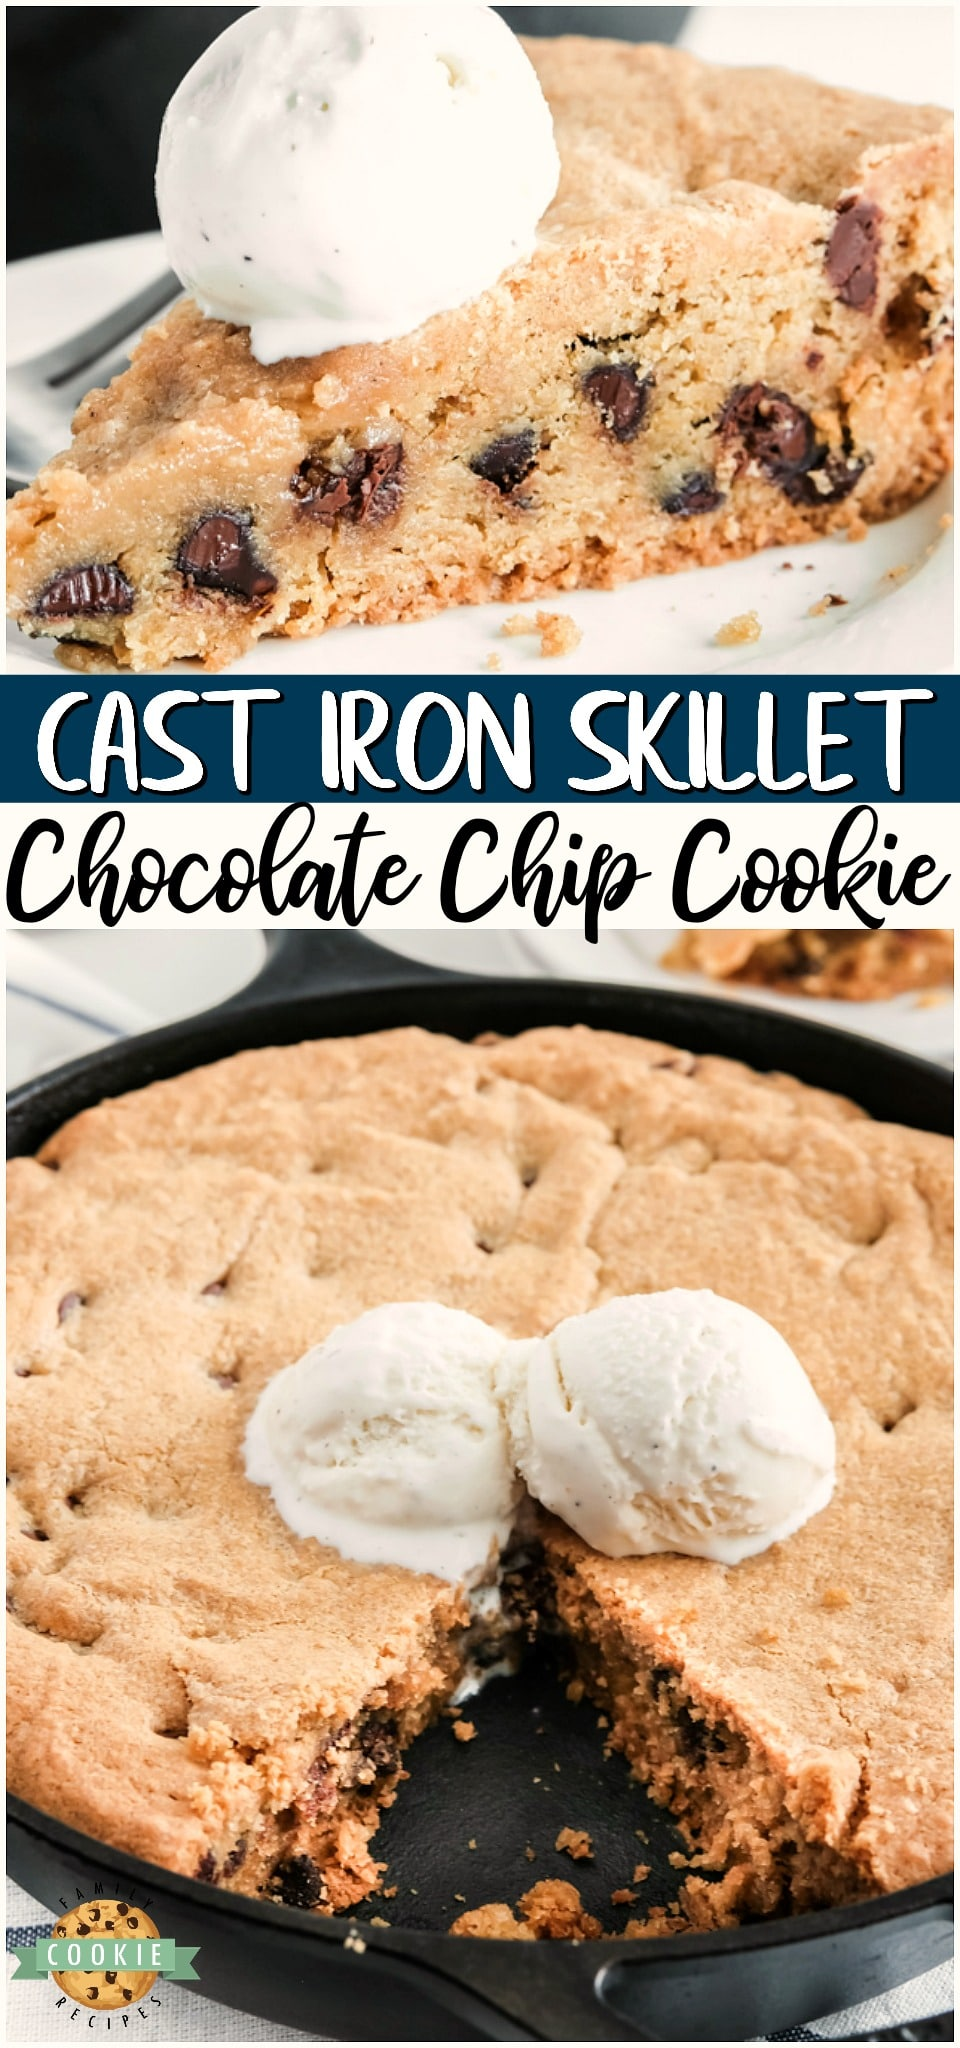 Cast Iron Skillet Cookie made with chocolate chip cookie dough, then baked in a skillet & topped with vanilla ice cream. Easy skillet cookie recipe for cookie lovers! #cookies #castiron #skillet #skilletcookie #chocolatechip #dessert from FAMILY COOKIE RECIPES via @buttergirls